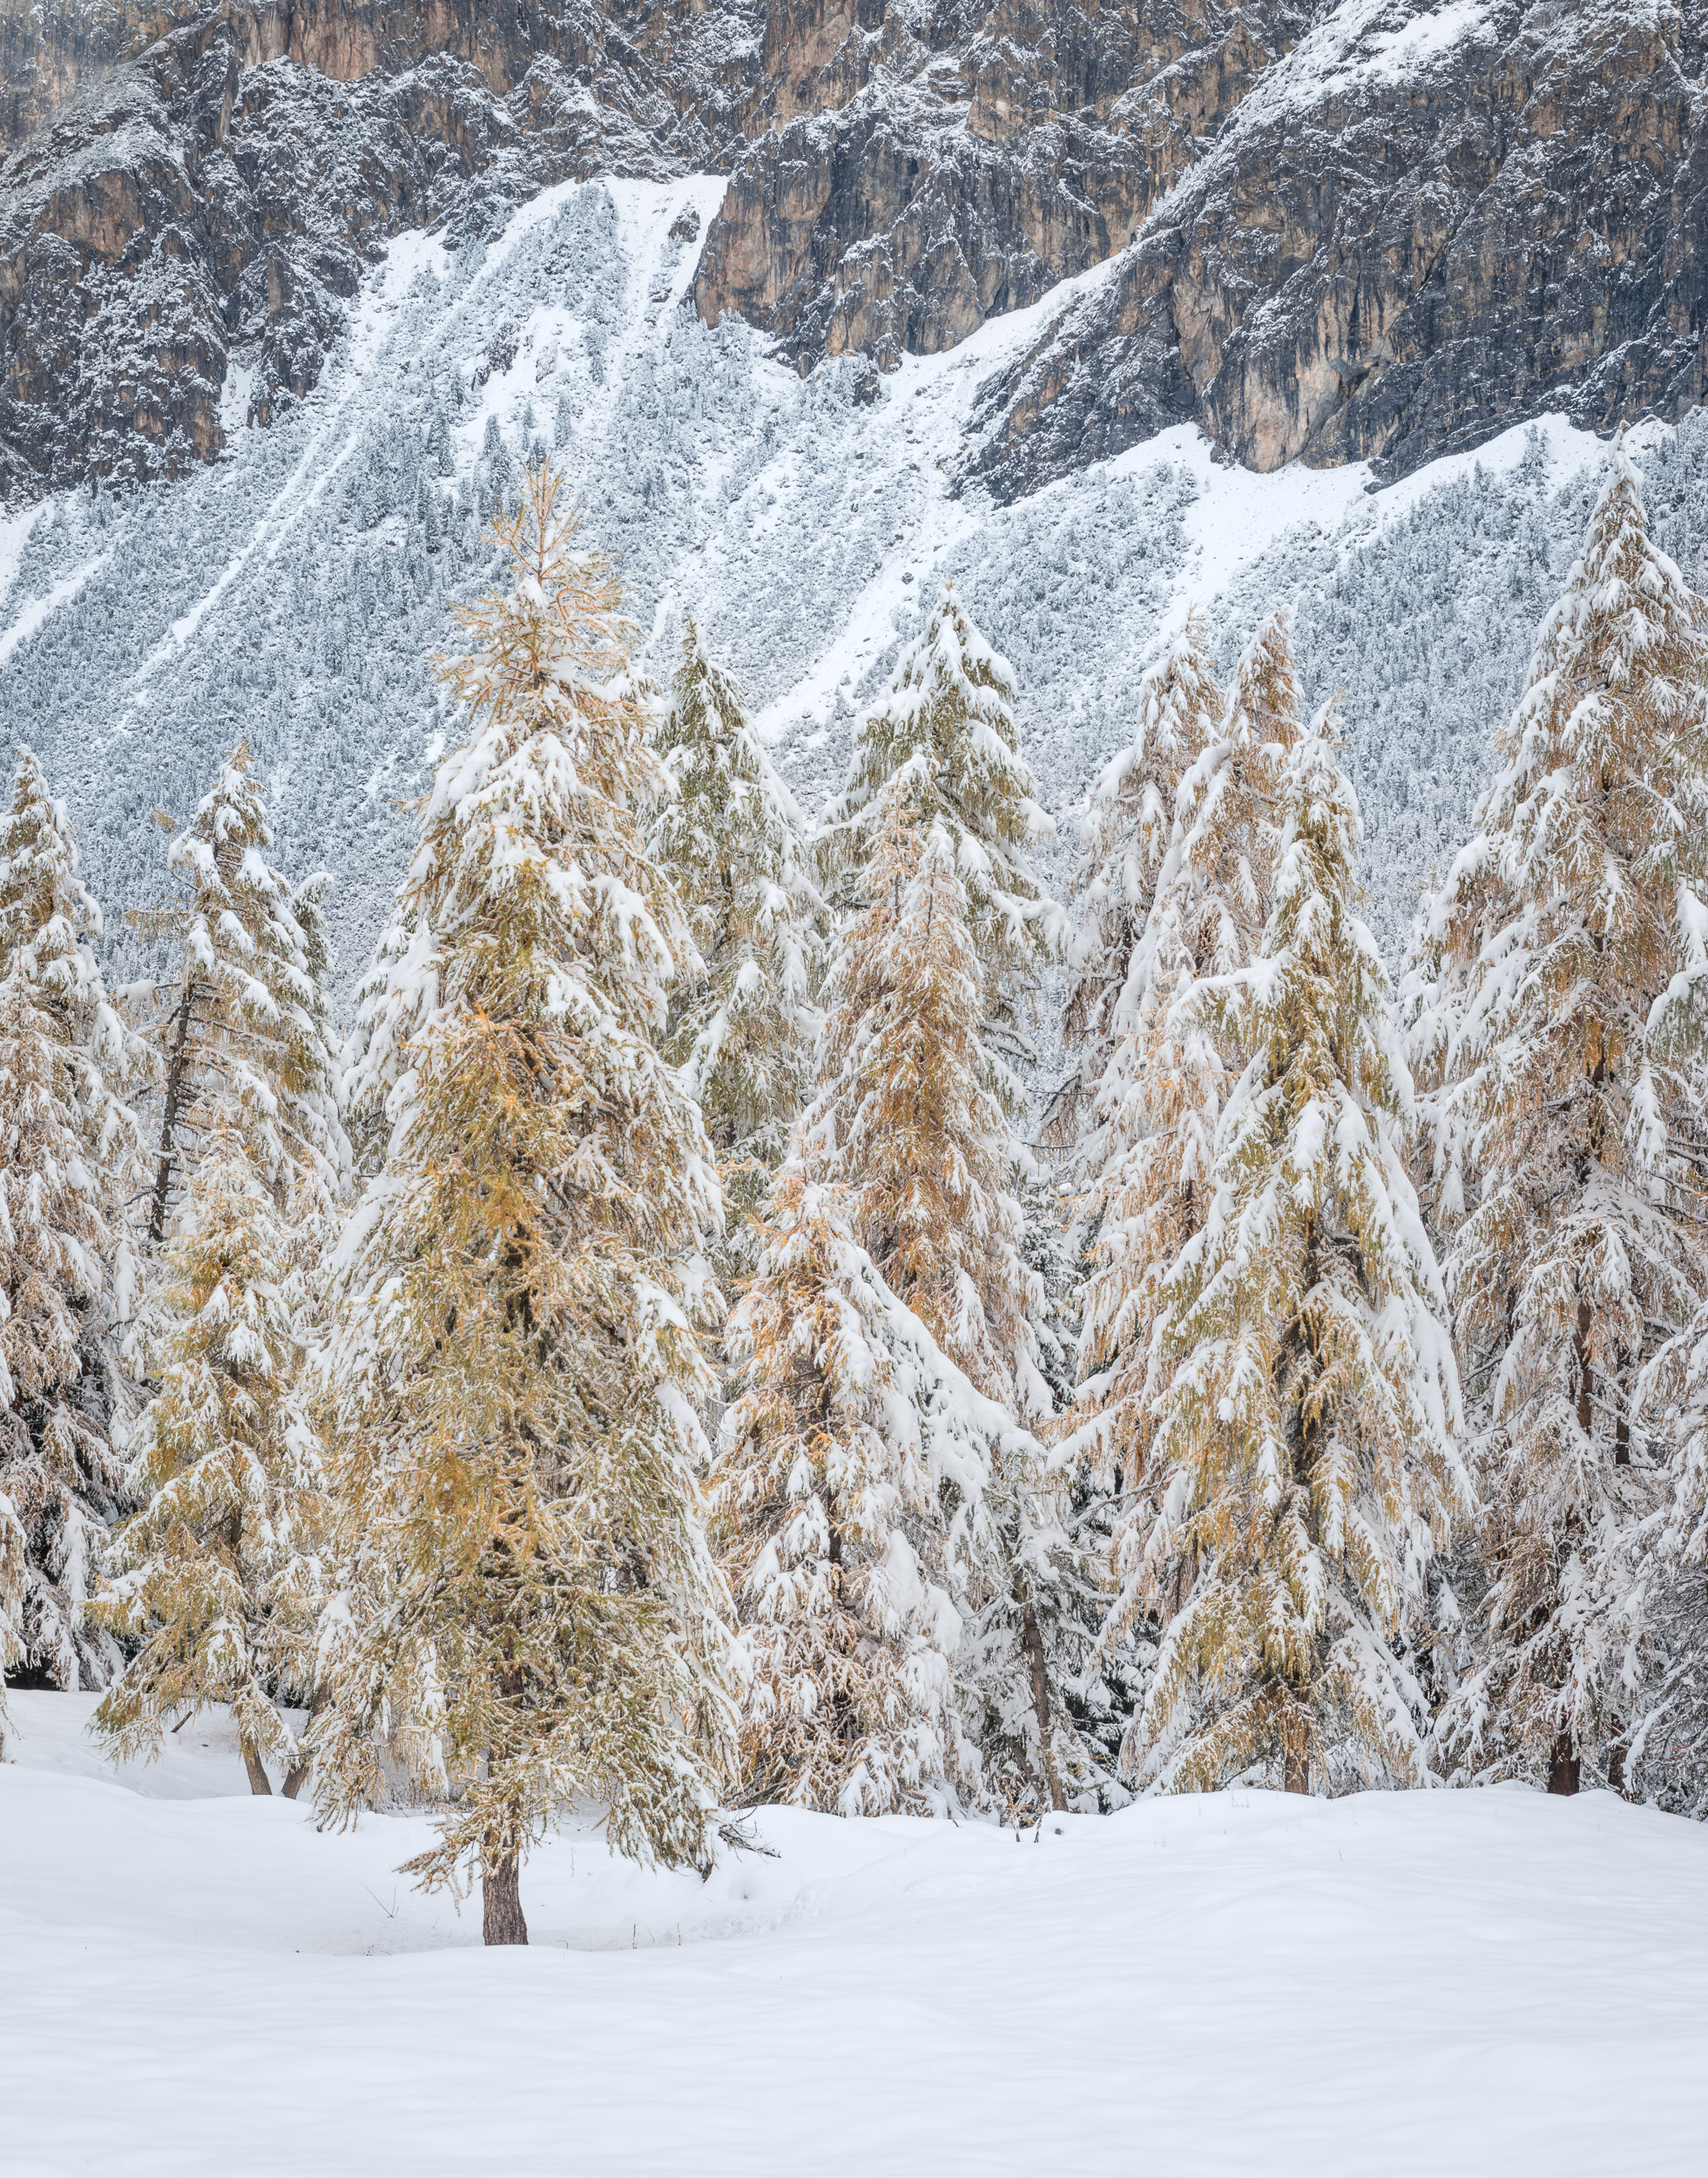 Study of textures in the winter forest with pale colors and tight composition - Switzerland, Rafael Rojas.jpg